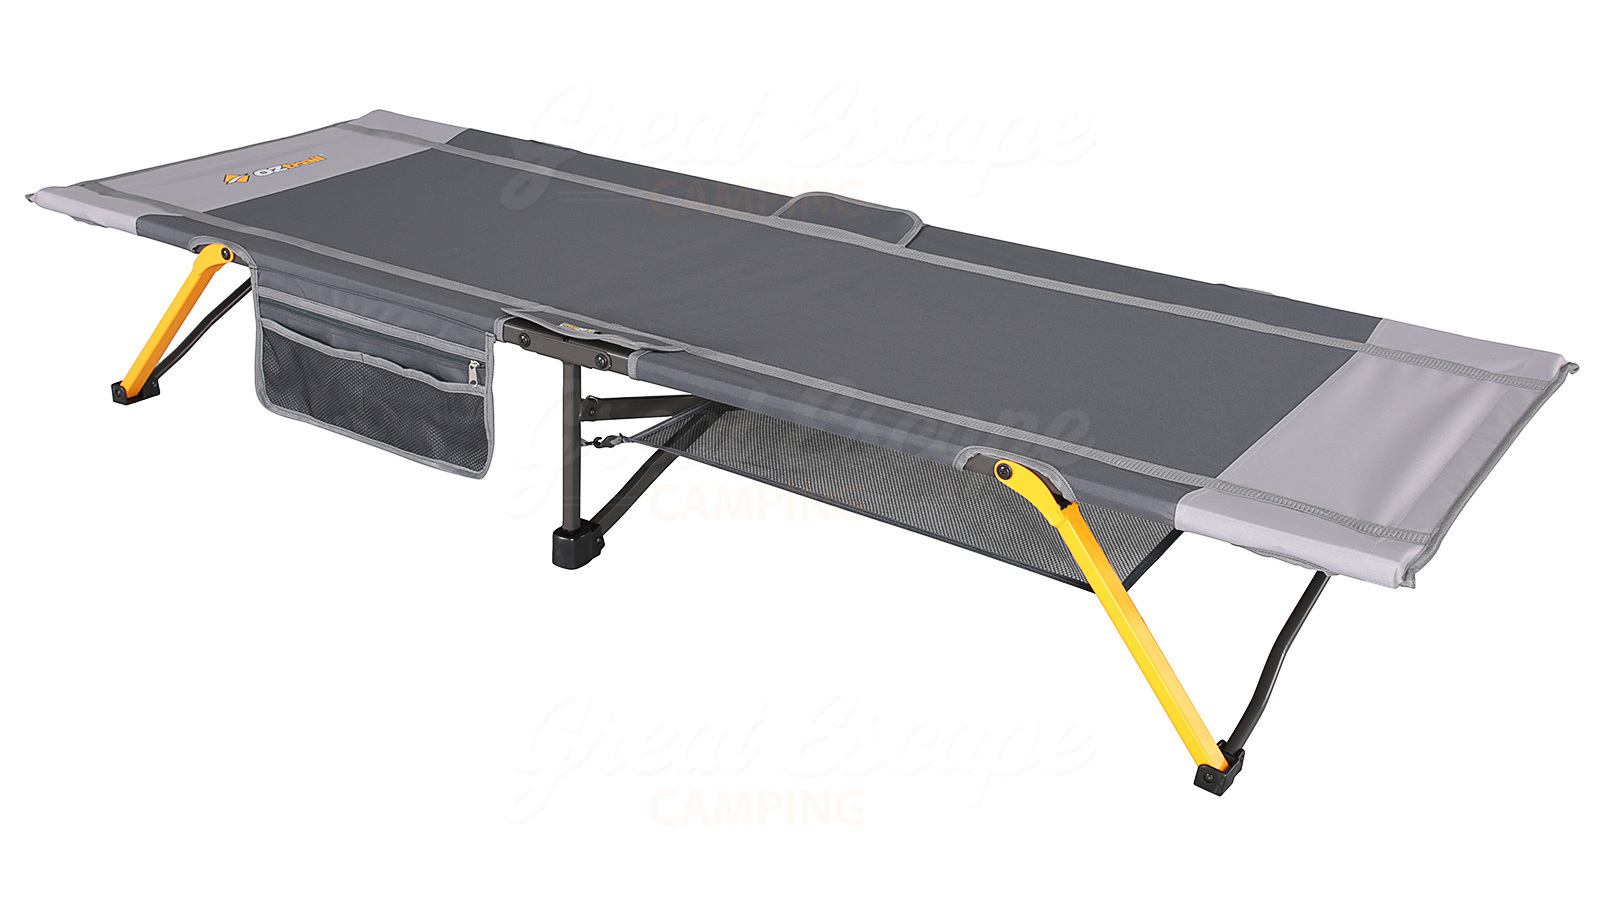 oztrail-easy-fold-low-rise-single-stretcher-setup-literally-takes-10-seconds--150kg